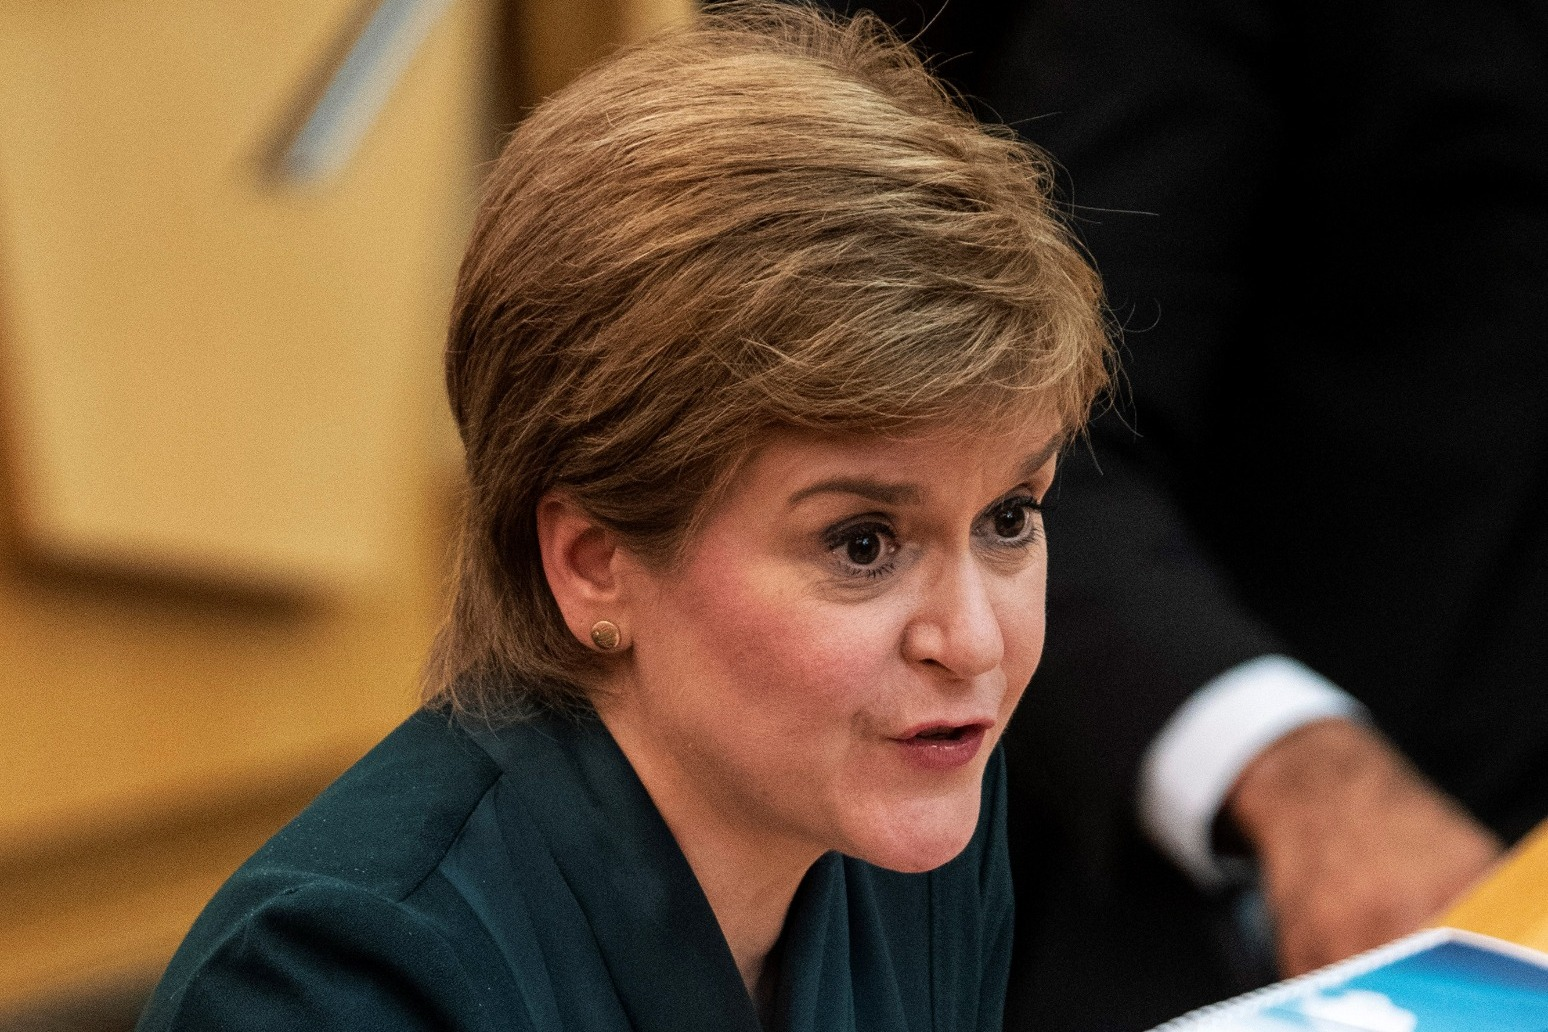 First Minister of Scotland Nicola Sturgeon accuses of Johnson of an 'absence of basic humanity' if he cuts benefits